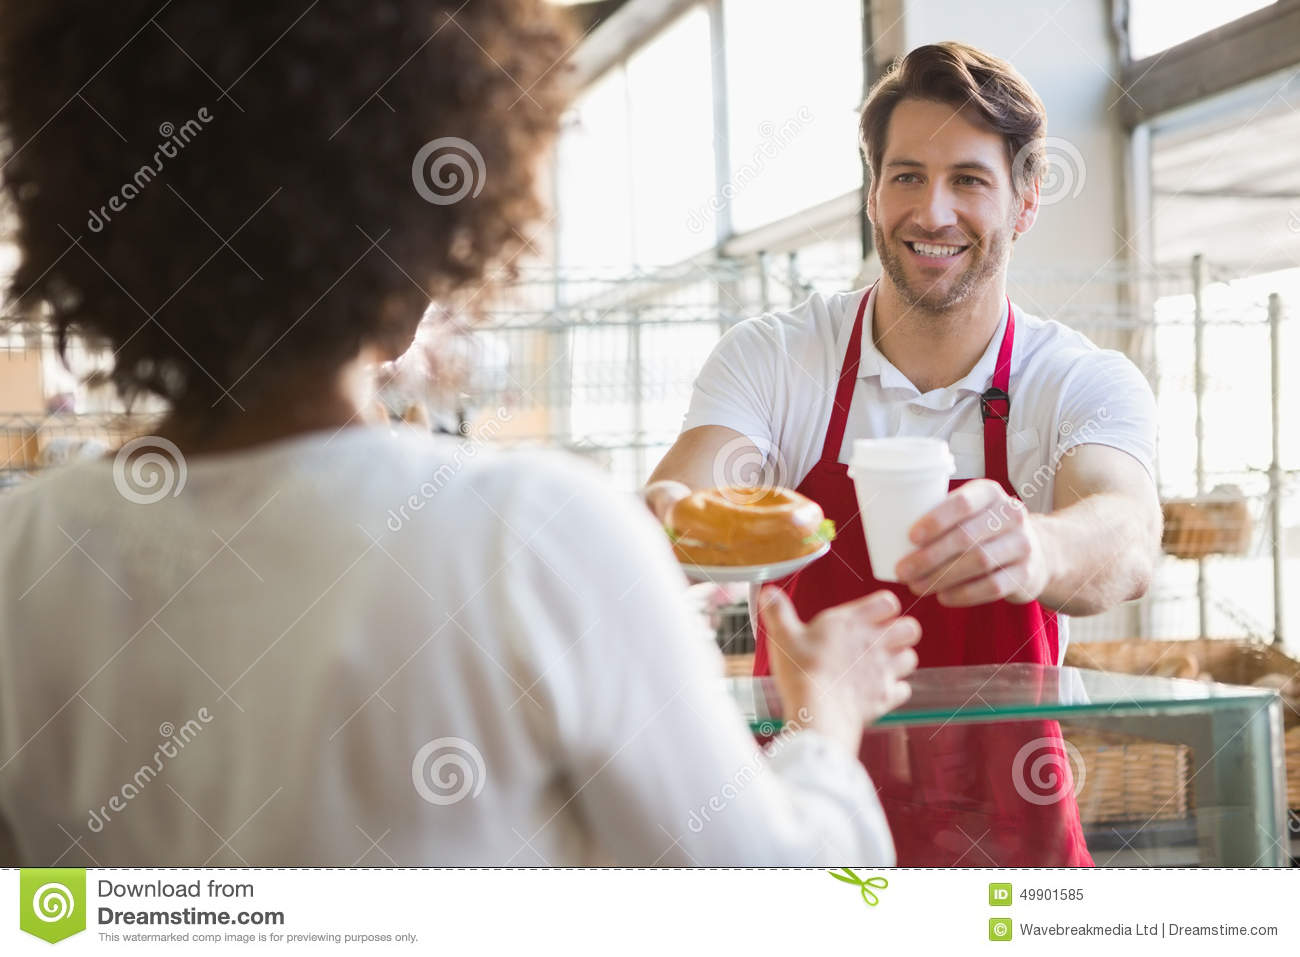 Smiling waiter giving lunch and hot drink to customer